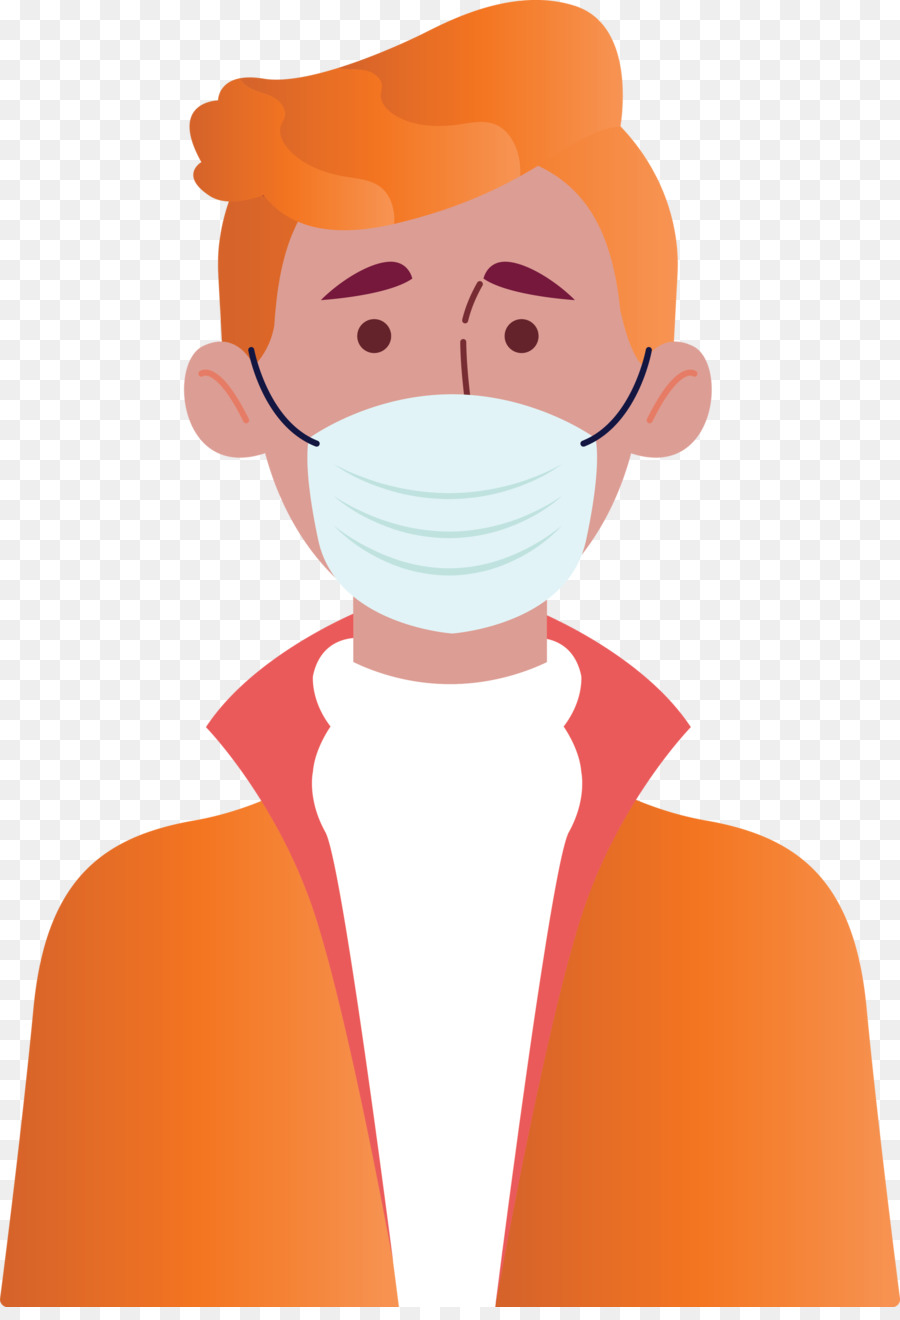 Animasi Orang Pakai Masker Png : animasi, orang, pakai, masker, Wearing, Coronavirus, Corona, Download, 2066*3000, Transparent, Download., CleanPNG, KissPNG